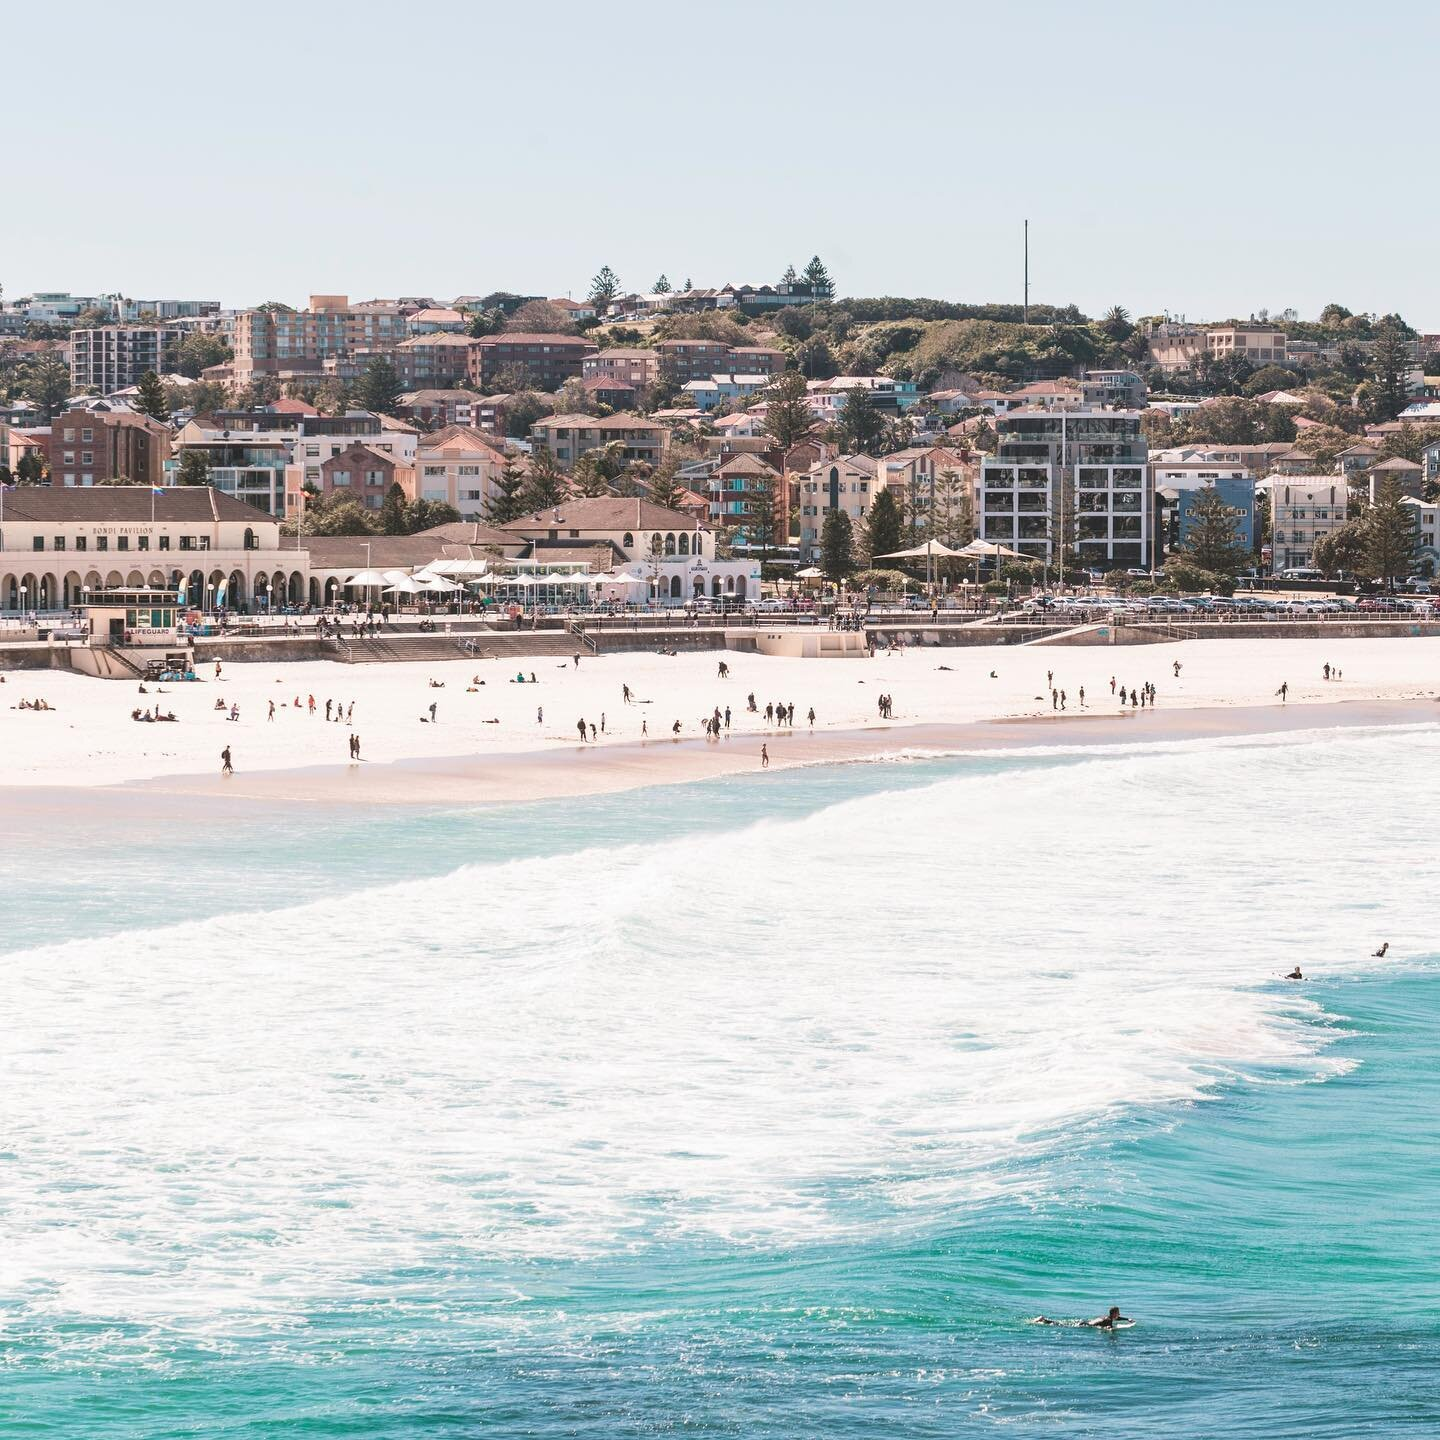 Surfing! Who has done it? Is it hard to paddle out? Is it hard to stand? Tell me your secrets ✨ I spent the first 10 years of my life in Bondi - my parents' old place and my grandmother's house is in the view of this photo - and I never learnt to surf, but I want to 😍I don't have great natural balance (or buoyancy if I'm being really honest 😅) but this summer I want to give it a crack⚡️even if the water at Bondi is oh so cold 🥶  . . So why am I talking about surfing in winter? I did an instagram story the other day about being healthy and working out, and I don't want to speak too soon, but I finally feel as though I will have the endurance and strength to actually stand on a surf board 😂🏄🏻 I wrote a post all about my experience going from an unfit potato to a someone of moderate fitness in about 9 weeks aaaaaand you should go check it out 😬 #linkinbio